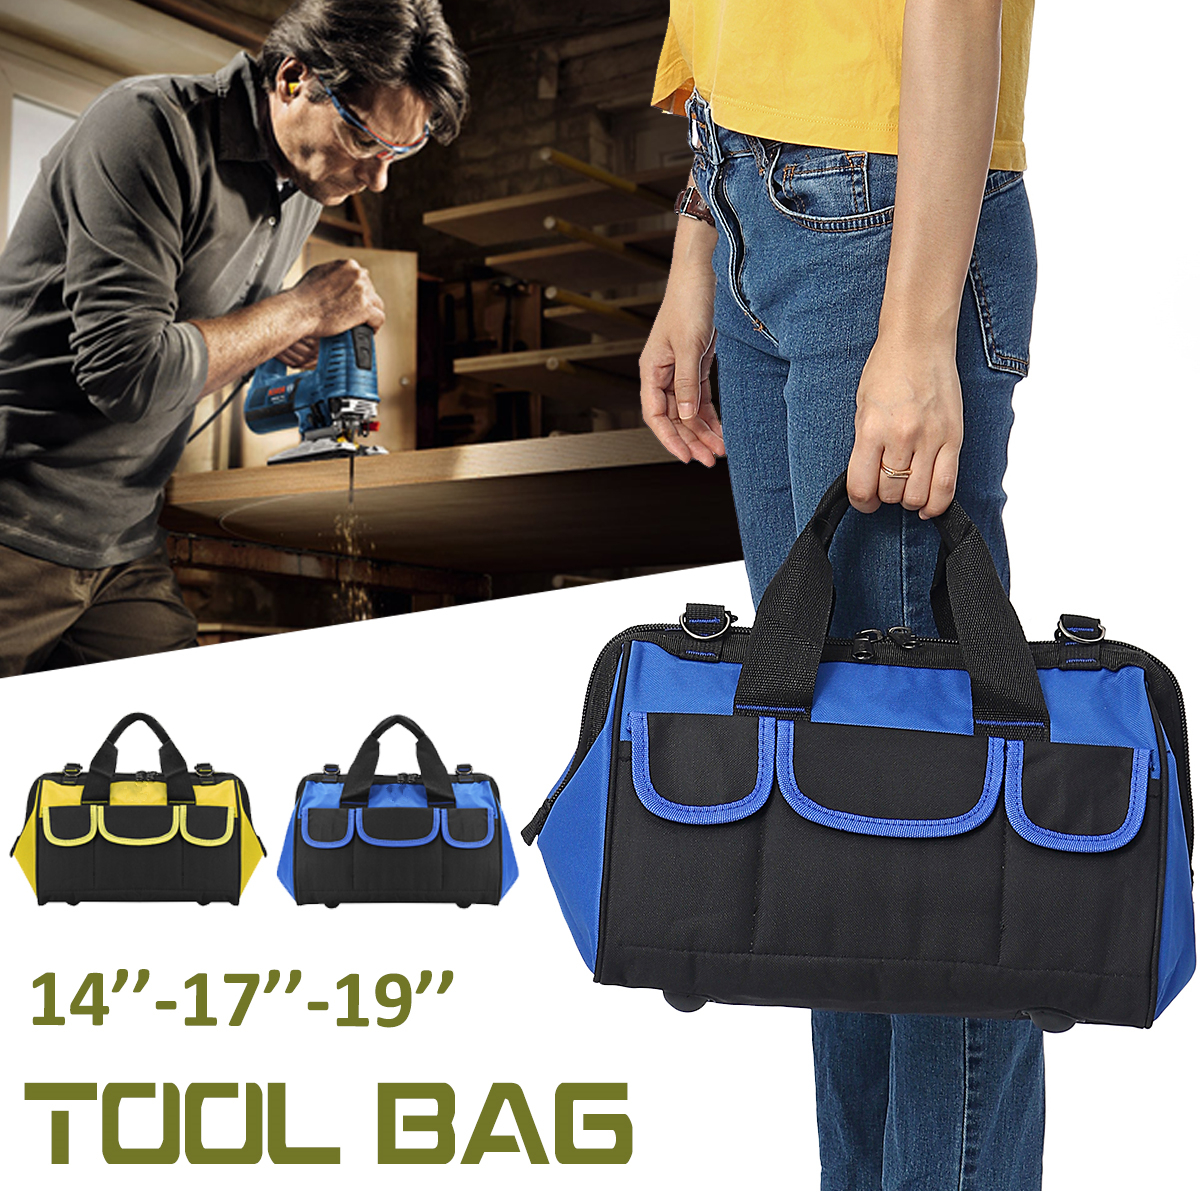 3 Sizes Portable Electrician Canvas Tool Bag Nylon Canvas Heavy Duty Tool Bag Contractor Storage Hardware Case by Generic